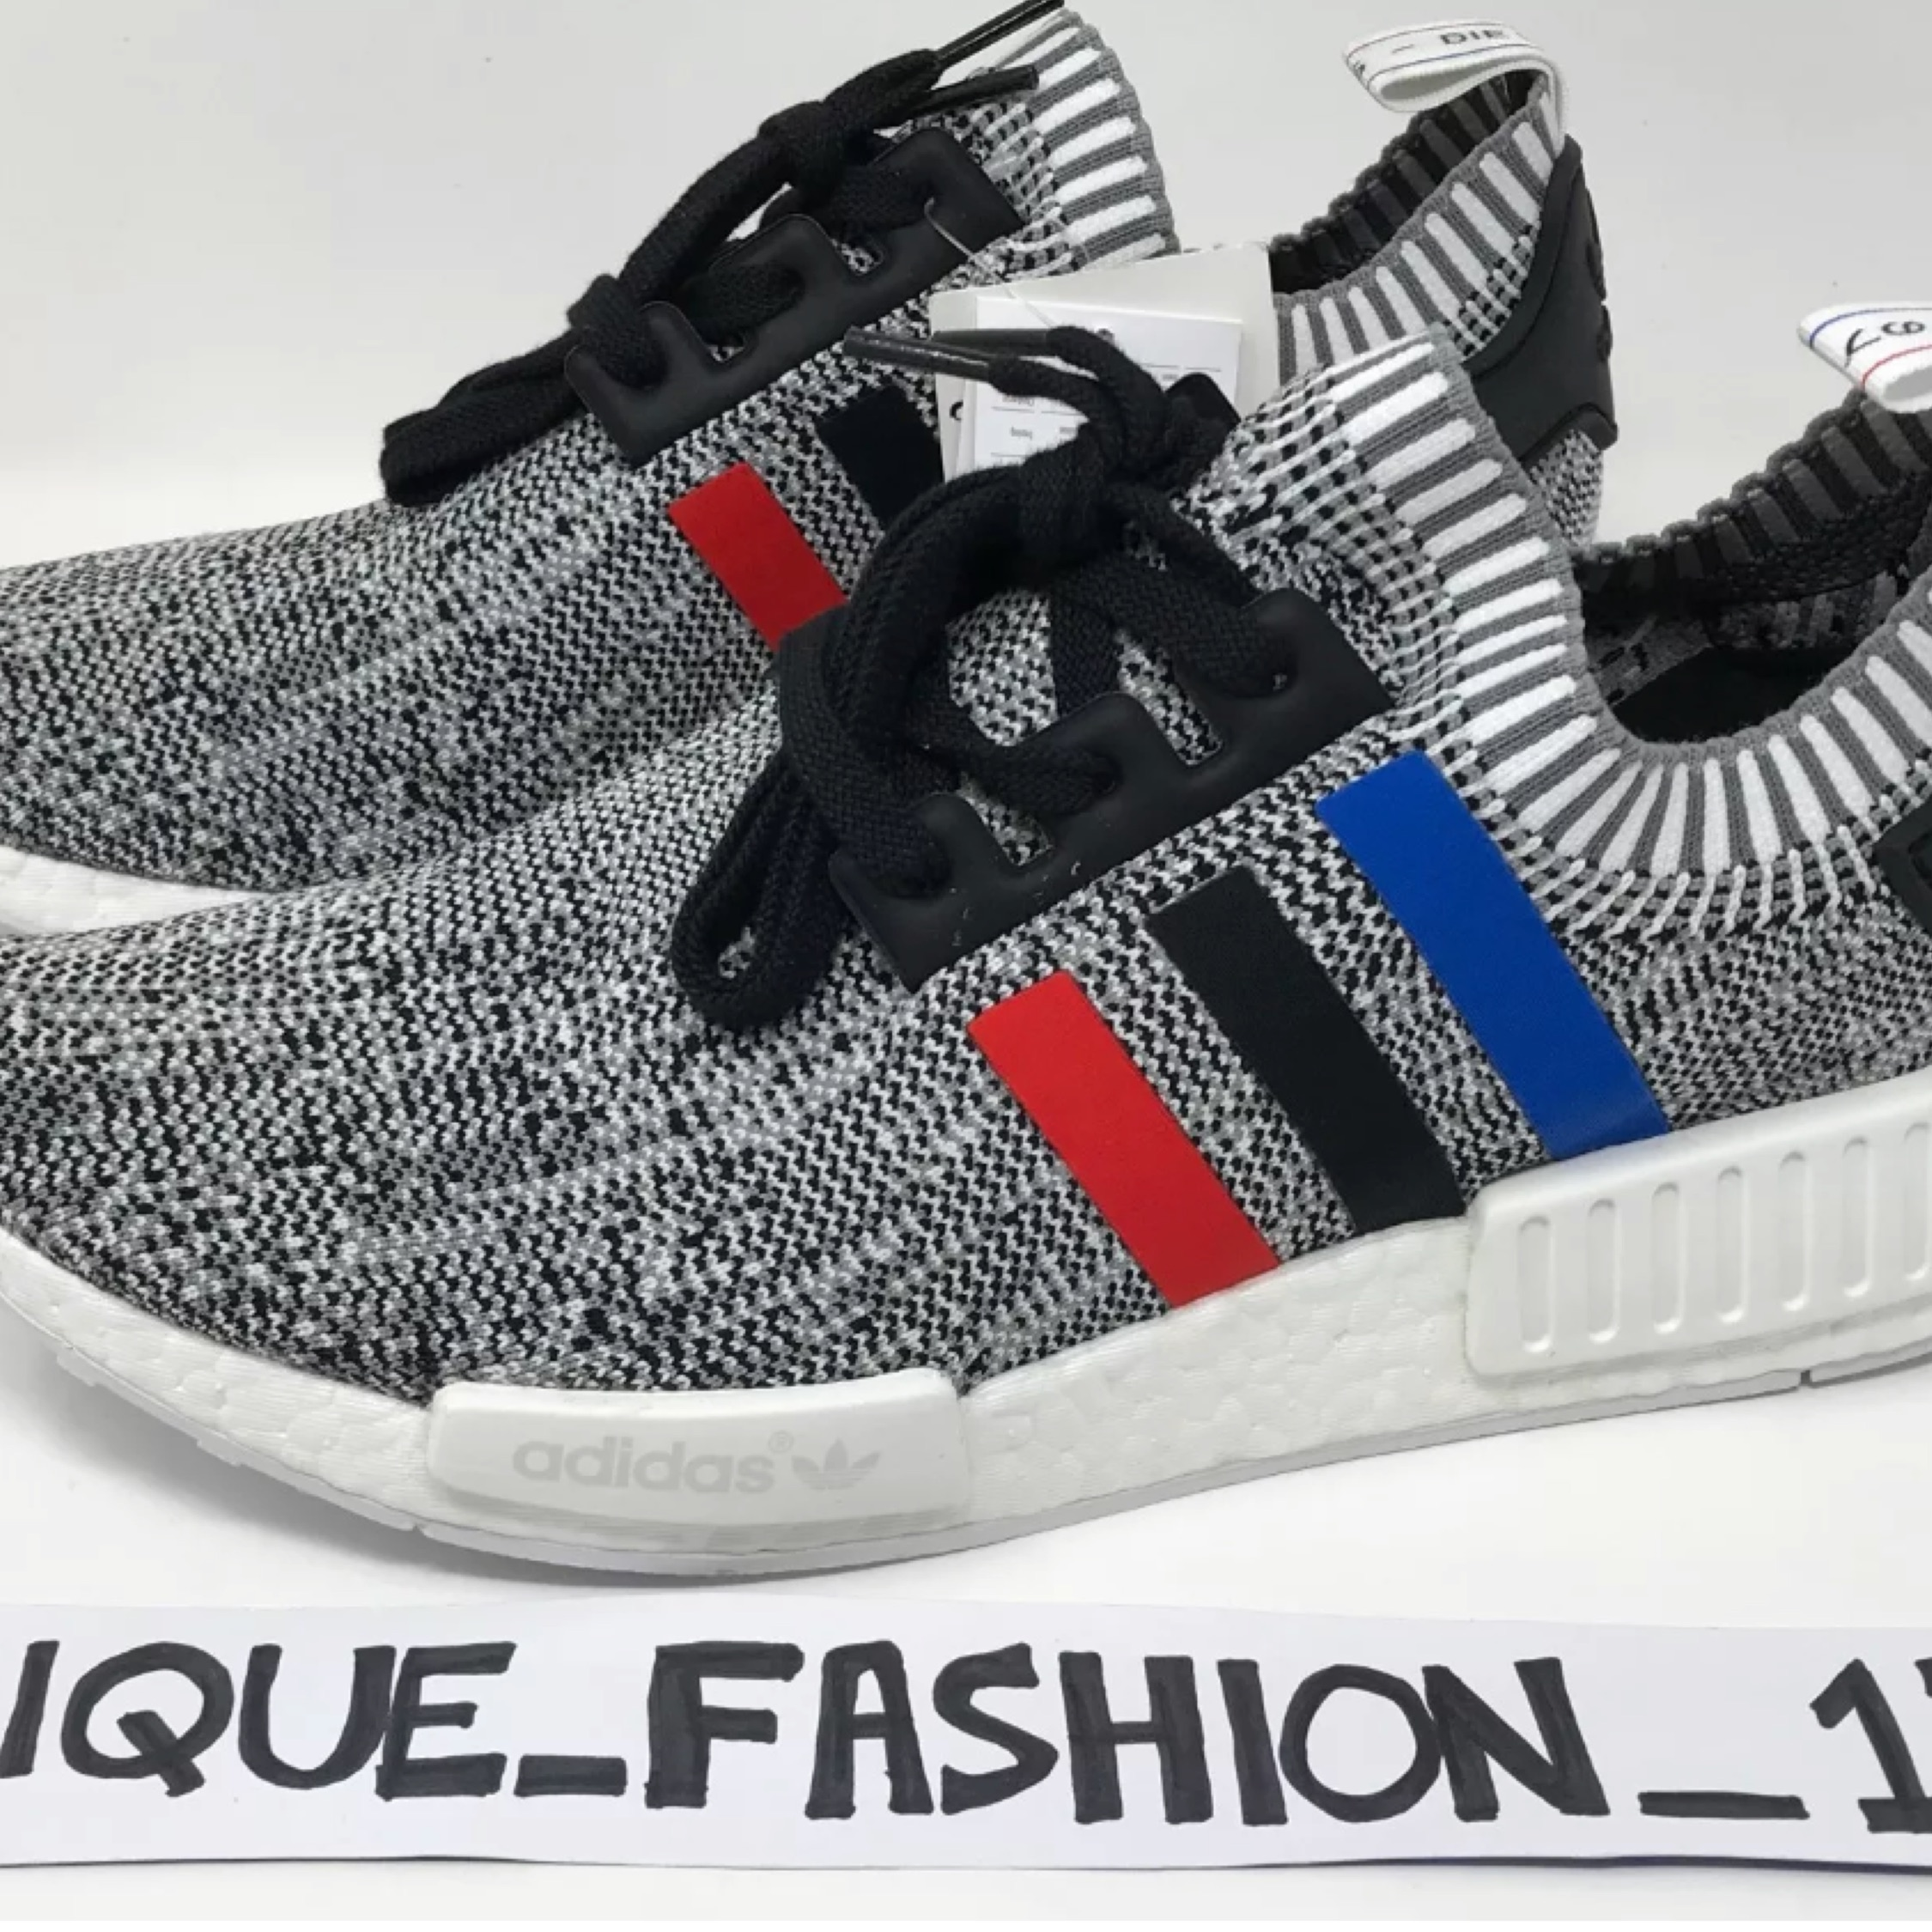 new product 24ac2 74859 Adidas Nmd R1 Grey Tri Colour New Us8.5